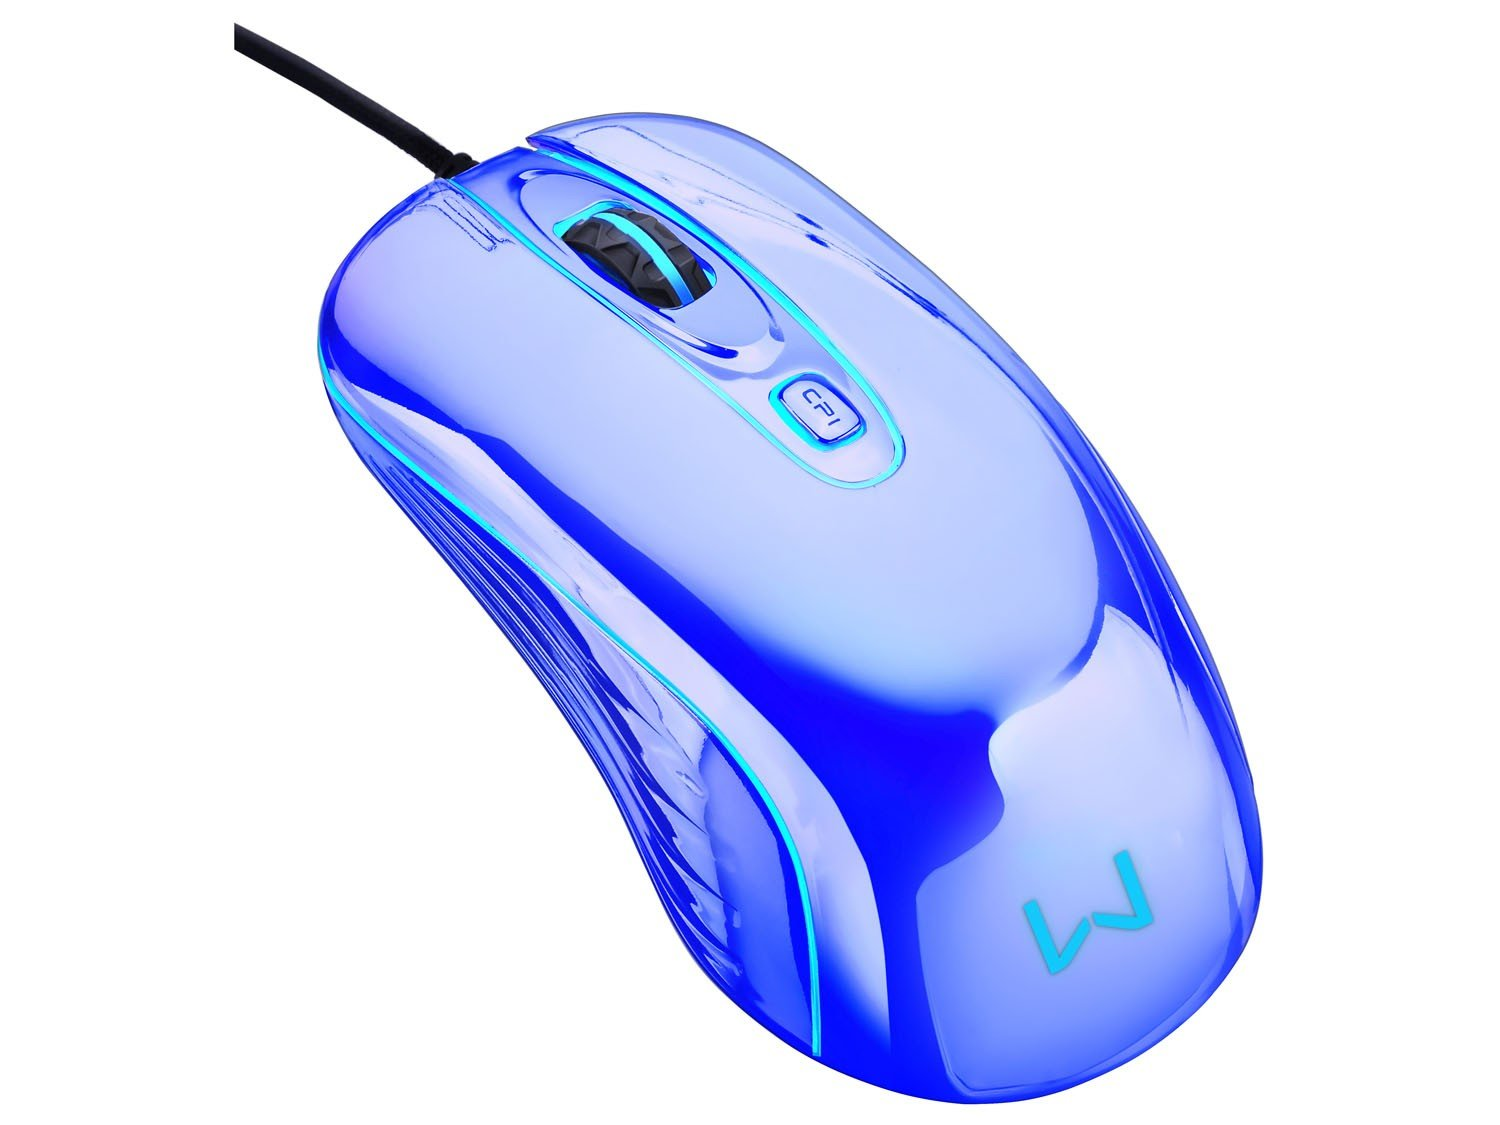 Foto 7 - Mouse Óptico 1600dpi USB - Multilaser Gamer Chrome Warrior M0228